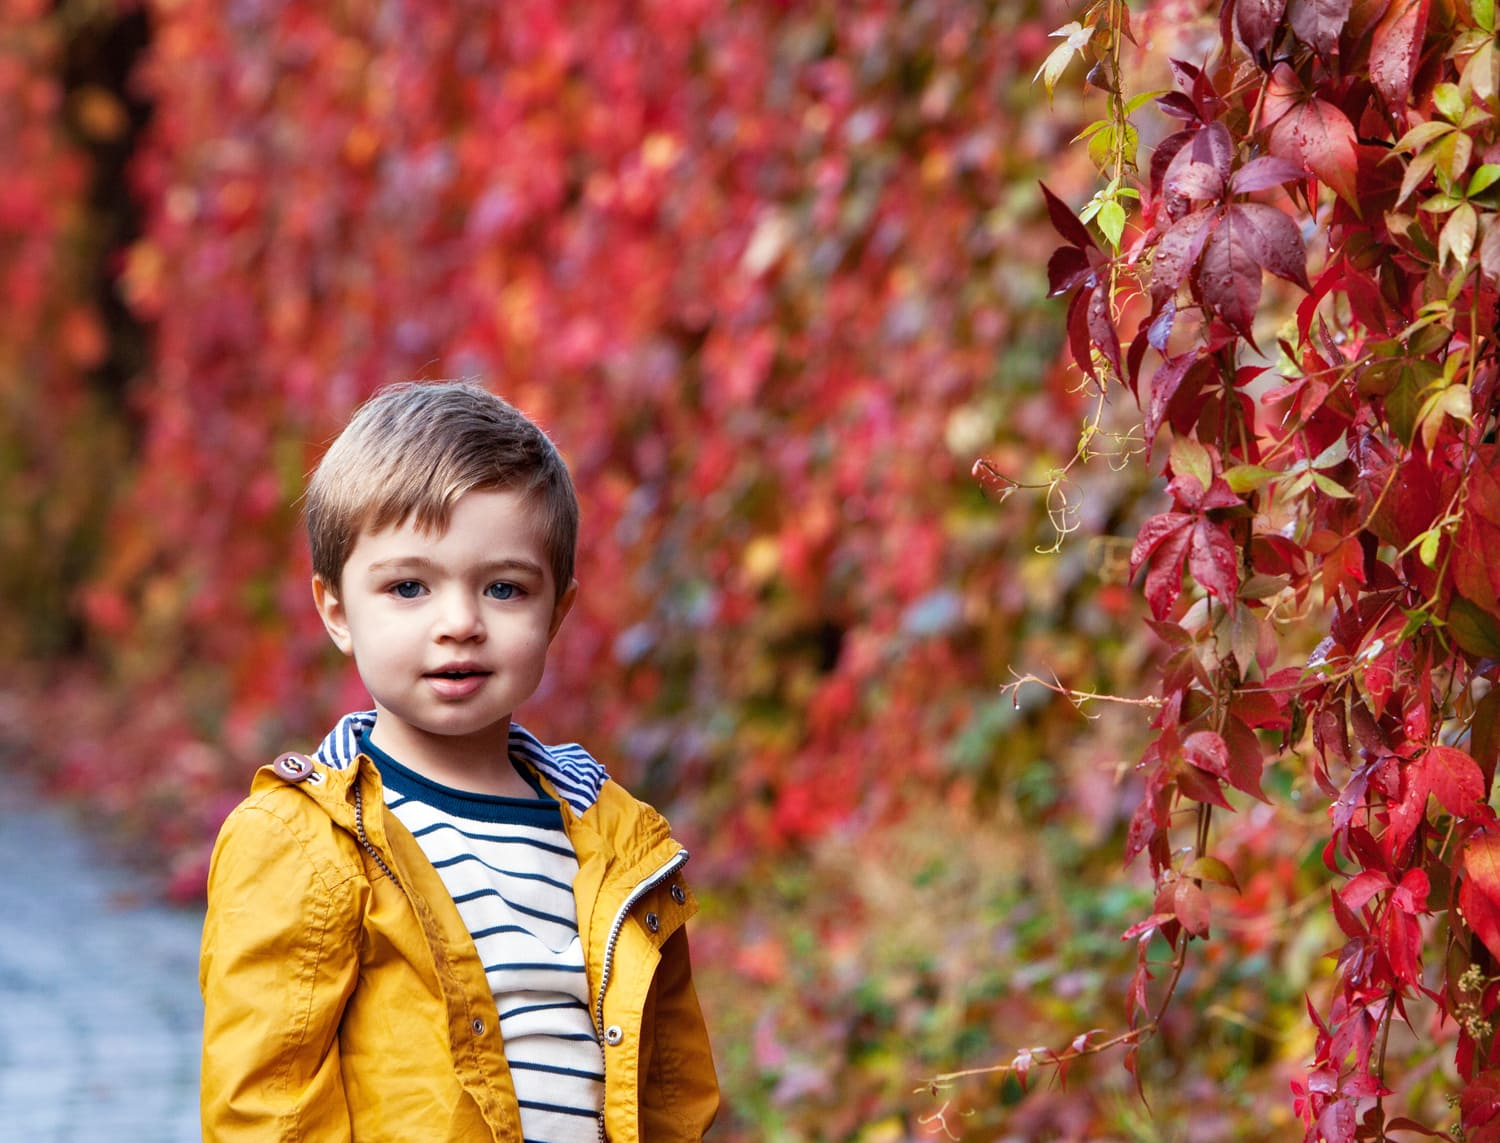 Autumn Leaves image of a little boy in Norton wearing a yellow raincoat against red leaves